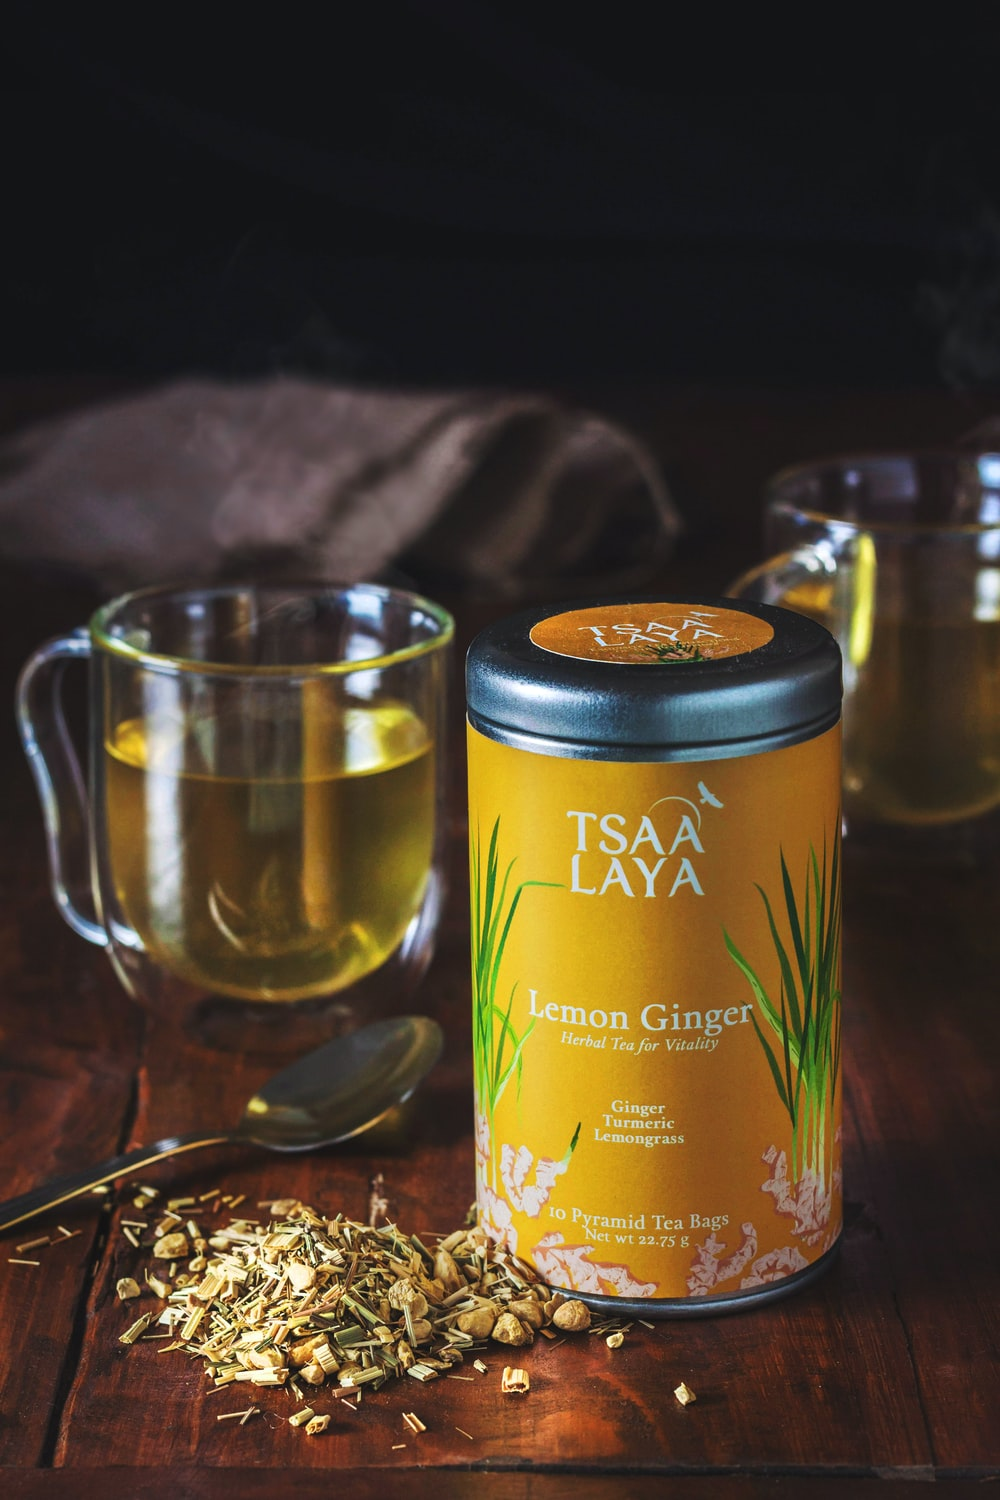 clear glass mug and Tsaa Laya lemon ginger labeled container on brown wooden table